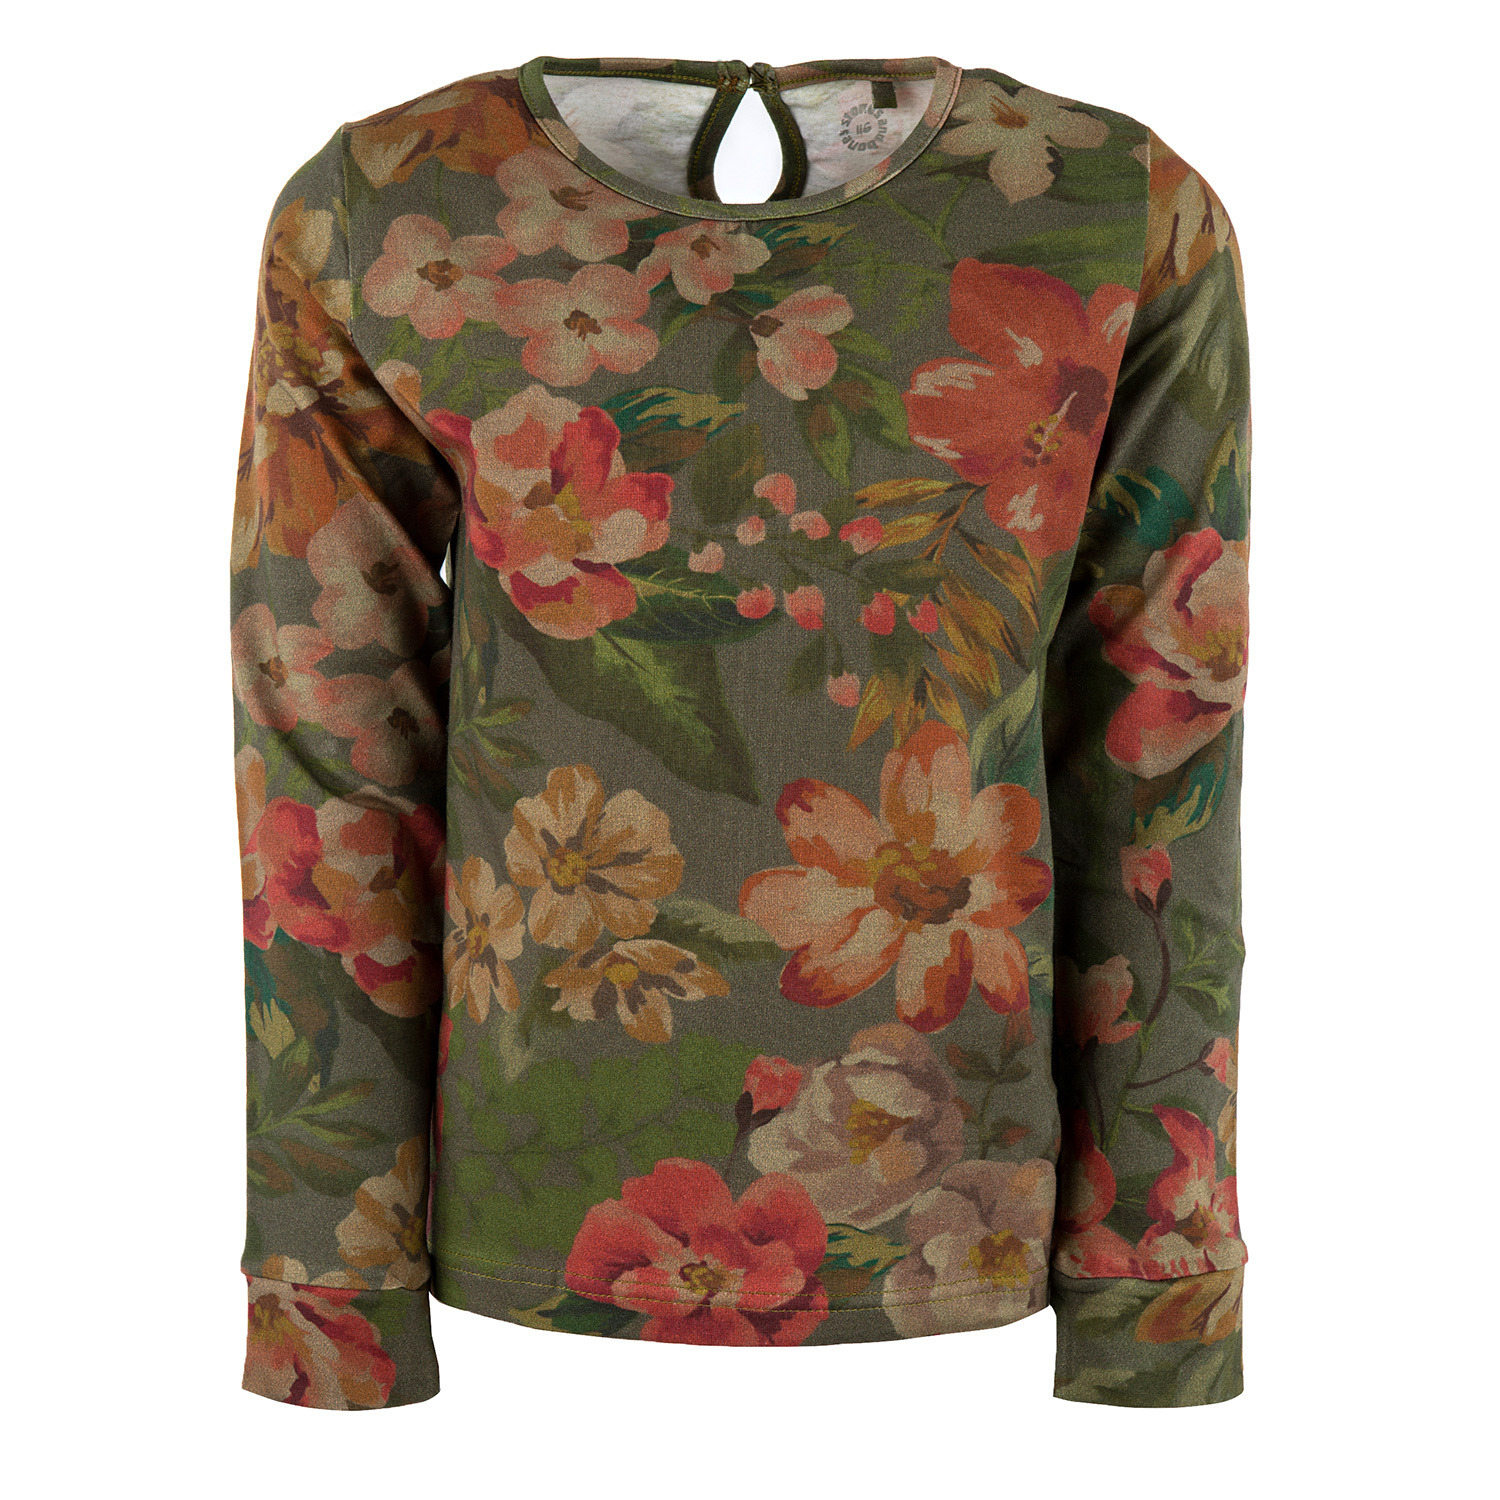 Amber - FLORAL green